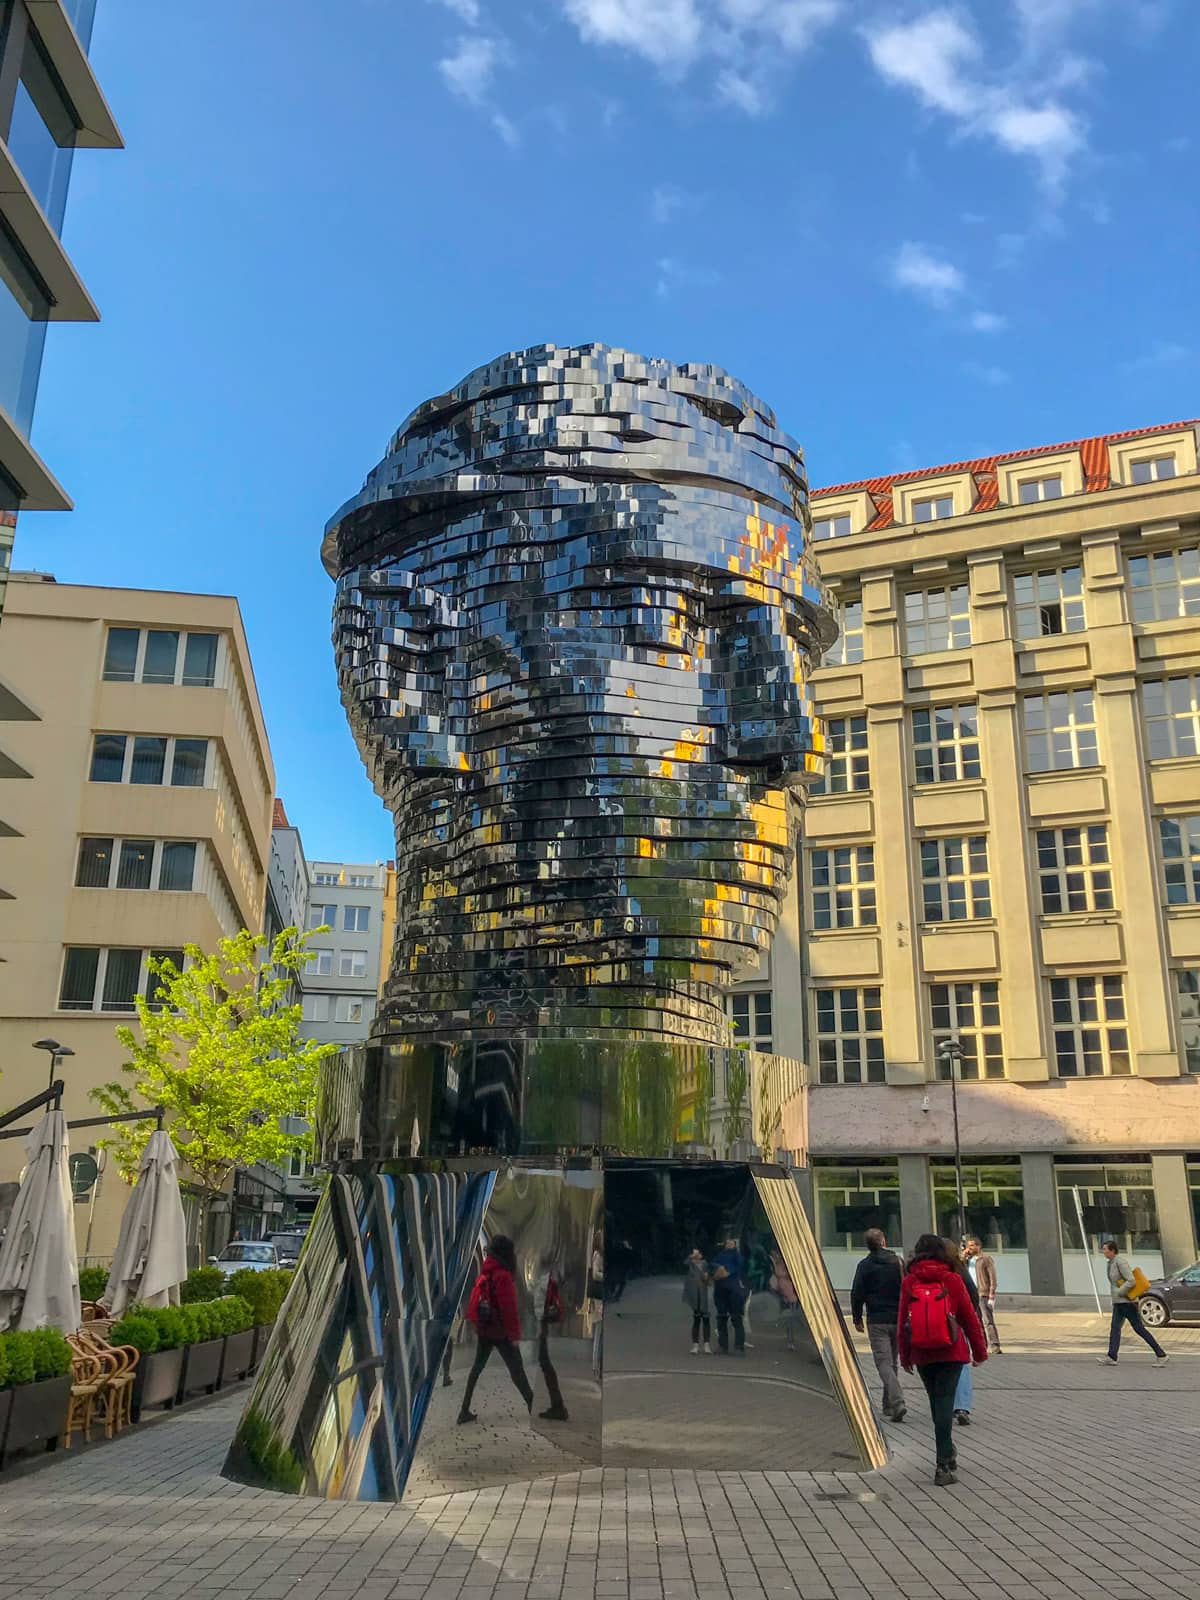 A statue of a person's head, with a reflective, silver surface, cut horizontally into slices, some of which are partially rotated